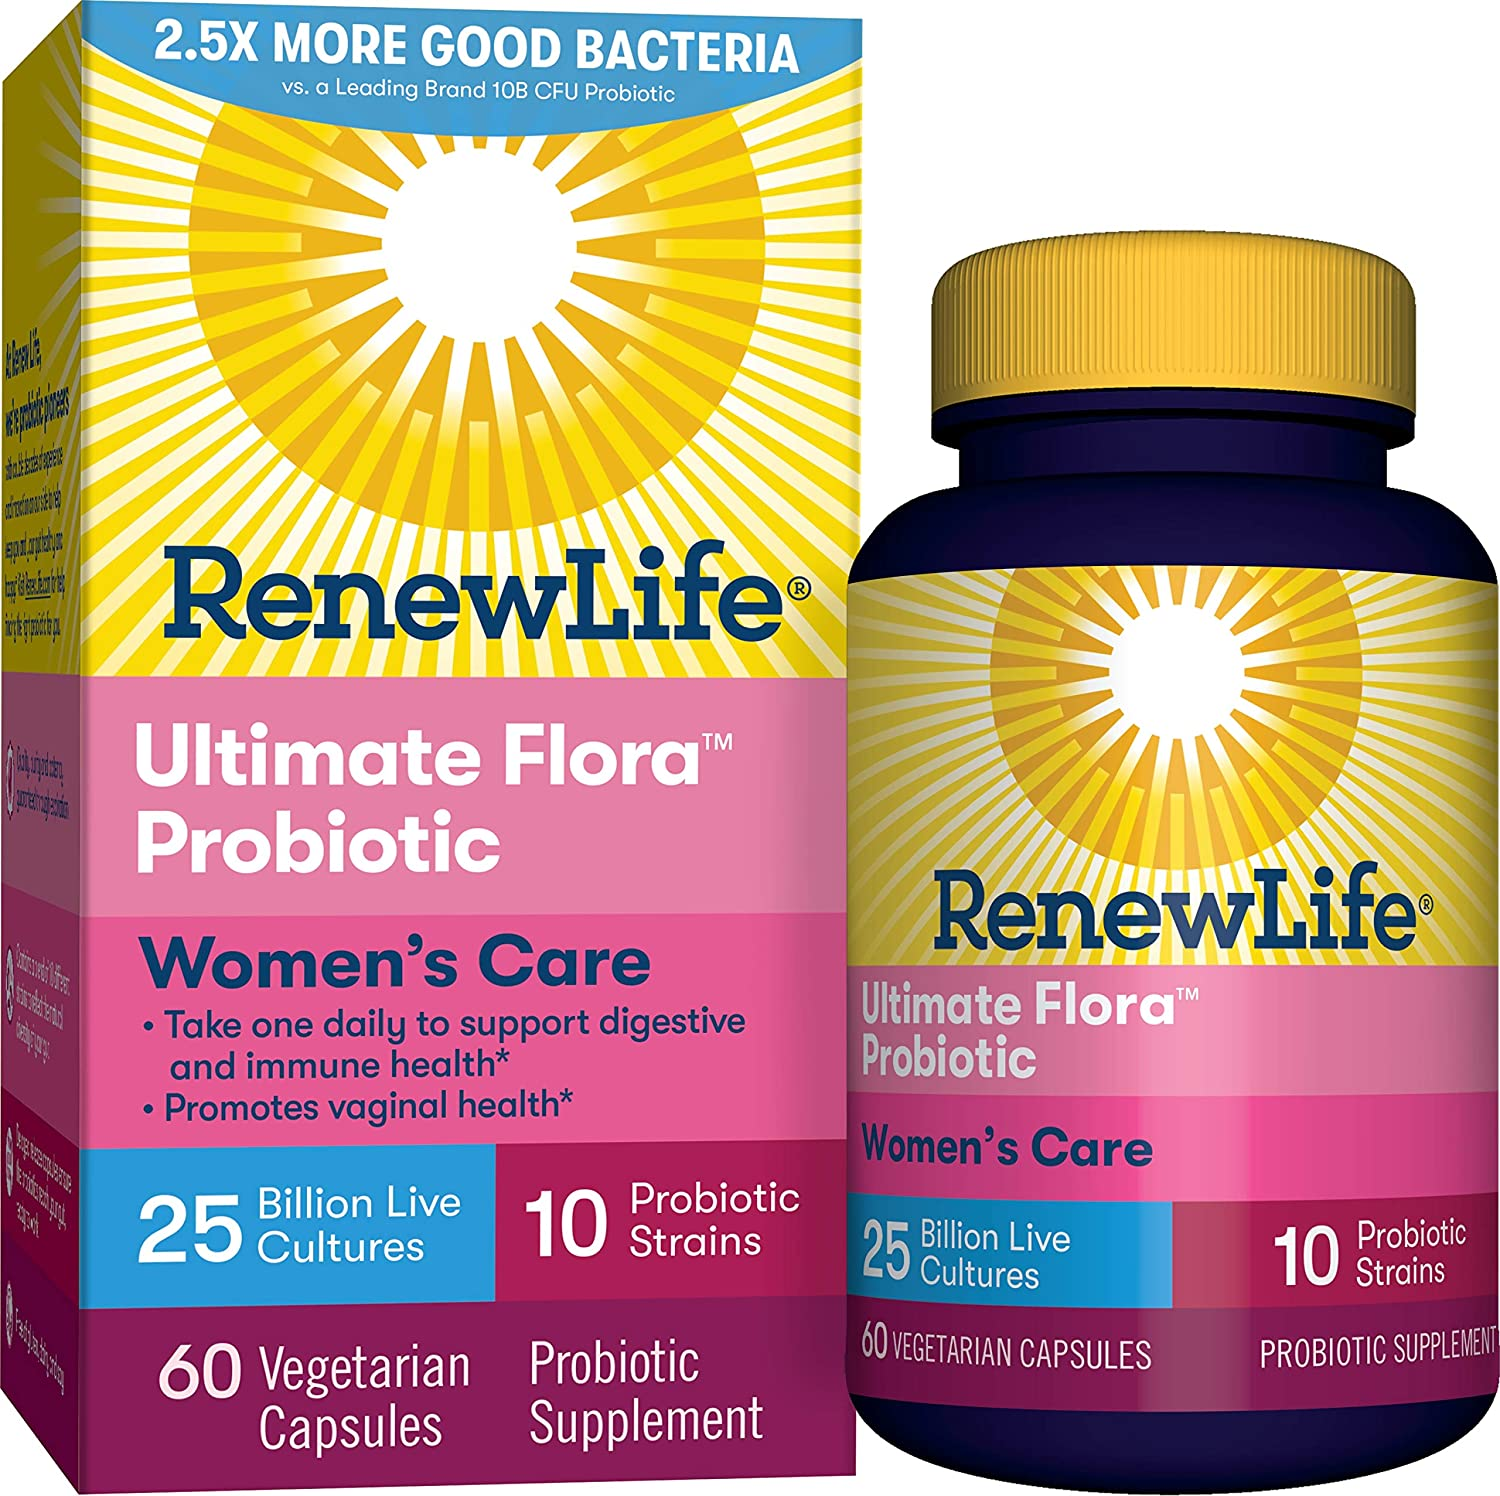 Renew Life #1 Women's Probiotic - Ultimate Flora Women's Care Shelf Stable Probiotic Supplement - Gluten, Dairy & Soy Free - 25 Billion CFU - 60 Vegetarian Capsules (Packaging May Vary)